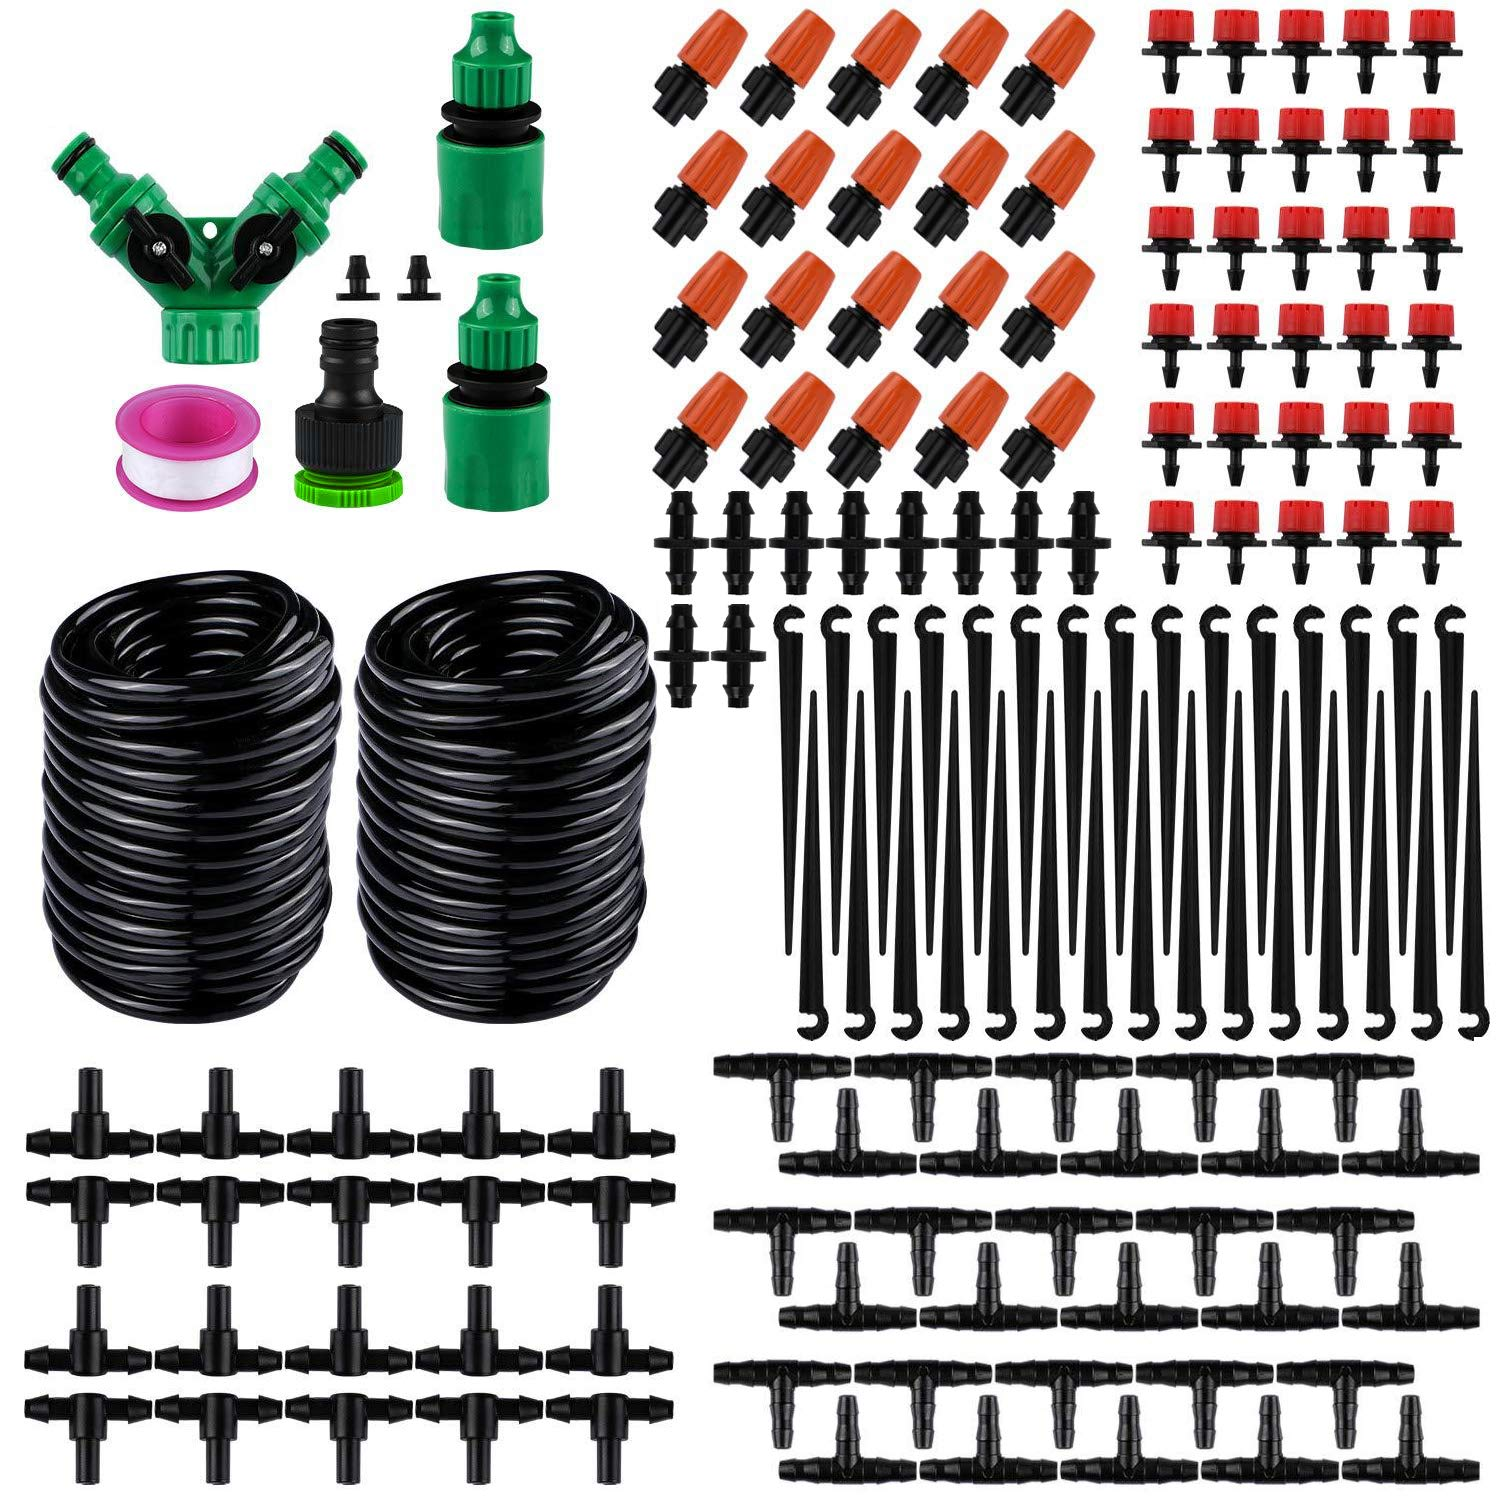 PiscatorZone Drip Irrigation Kits,98ft Garden Irrigation System with 1/4'' Blank Distribution Tubing Watering Drip Kit,DIY Saving Water Automatic Irrigation Equipment Set (30m/98ft Irrigation Systemc) by PiscatorZone